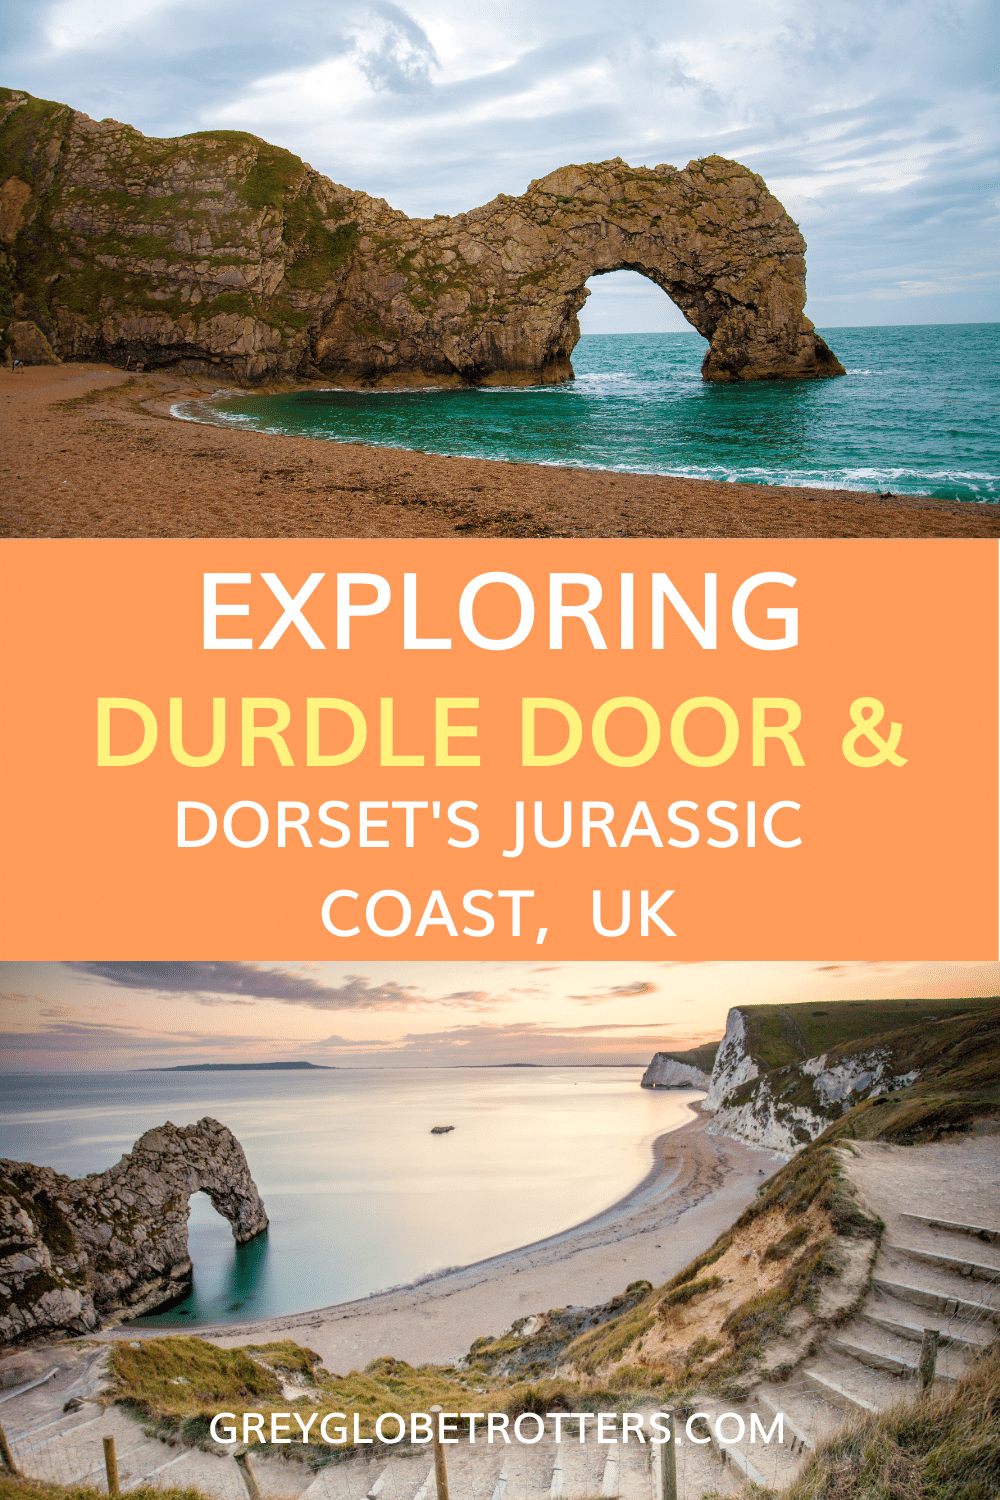 Exploring Dorset's stunning Jurassic coast and Durdle Door